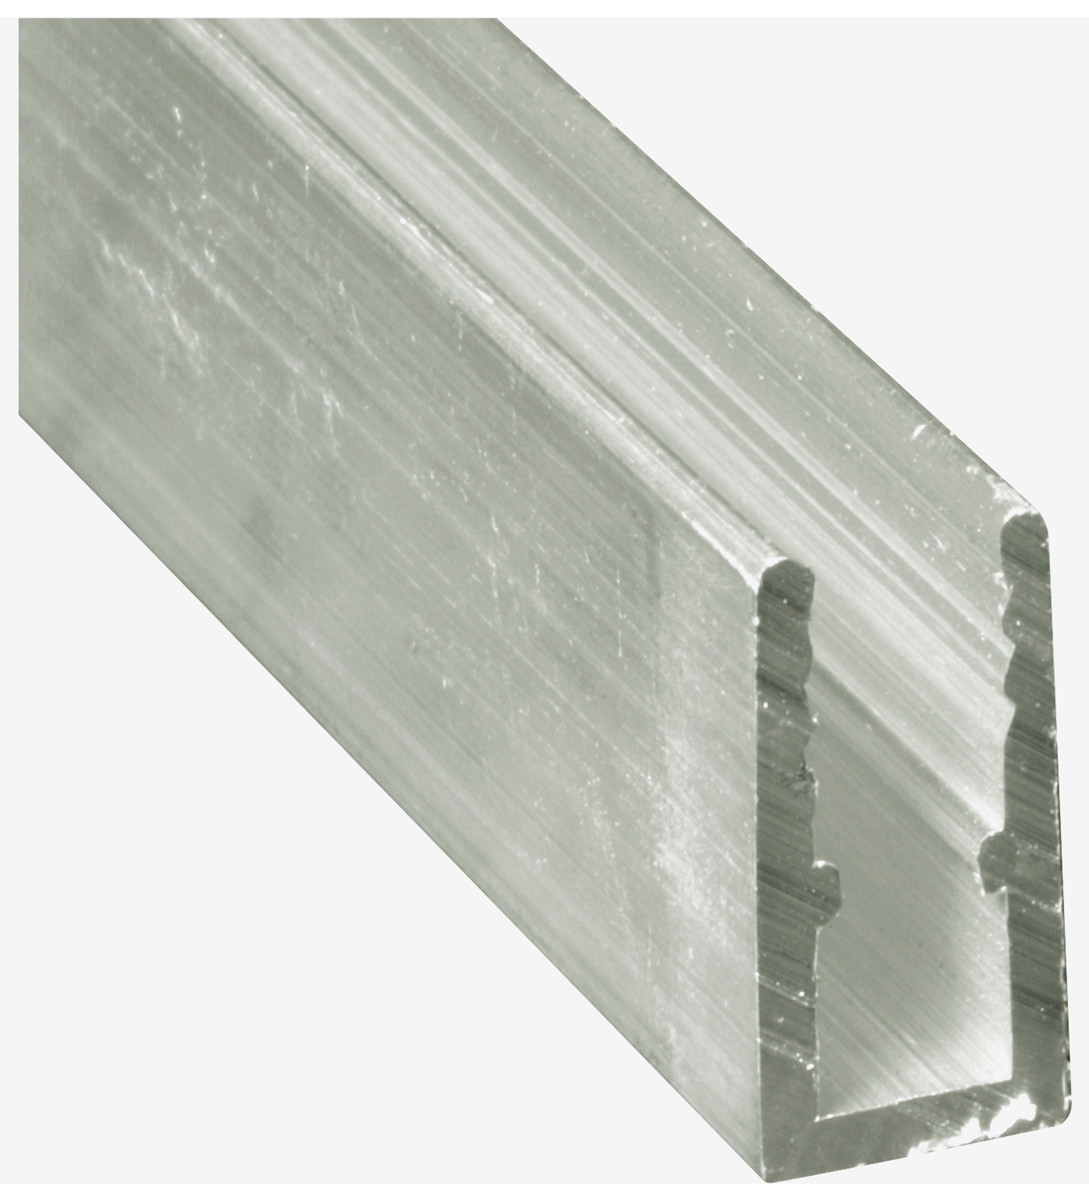 Prime Line PL14164 Back Room Aluminum Window Frame 5/16 By 5/8 By 1 ...